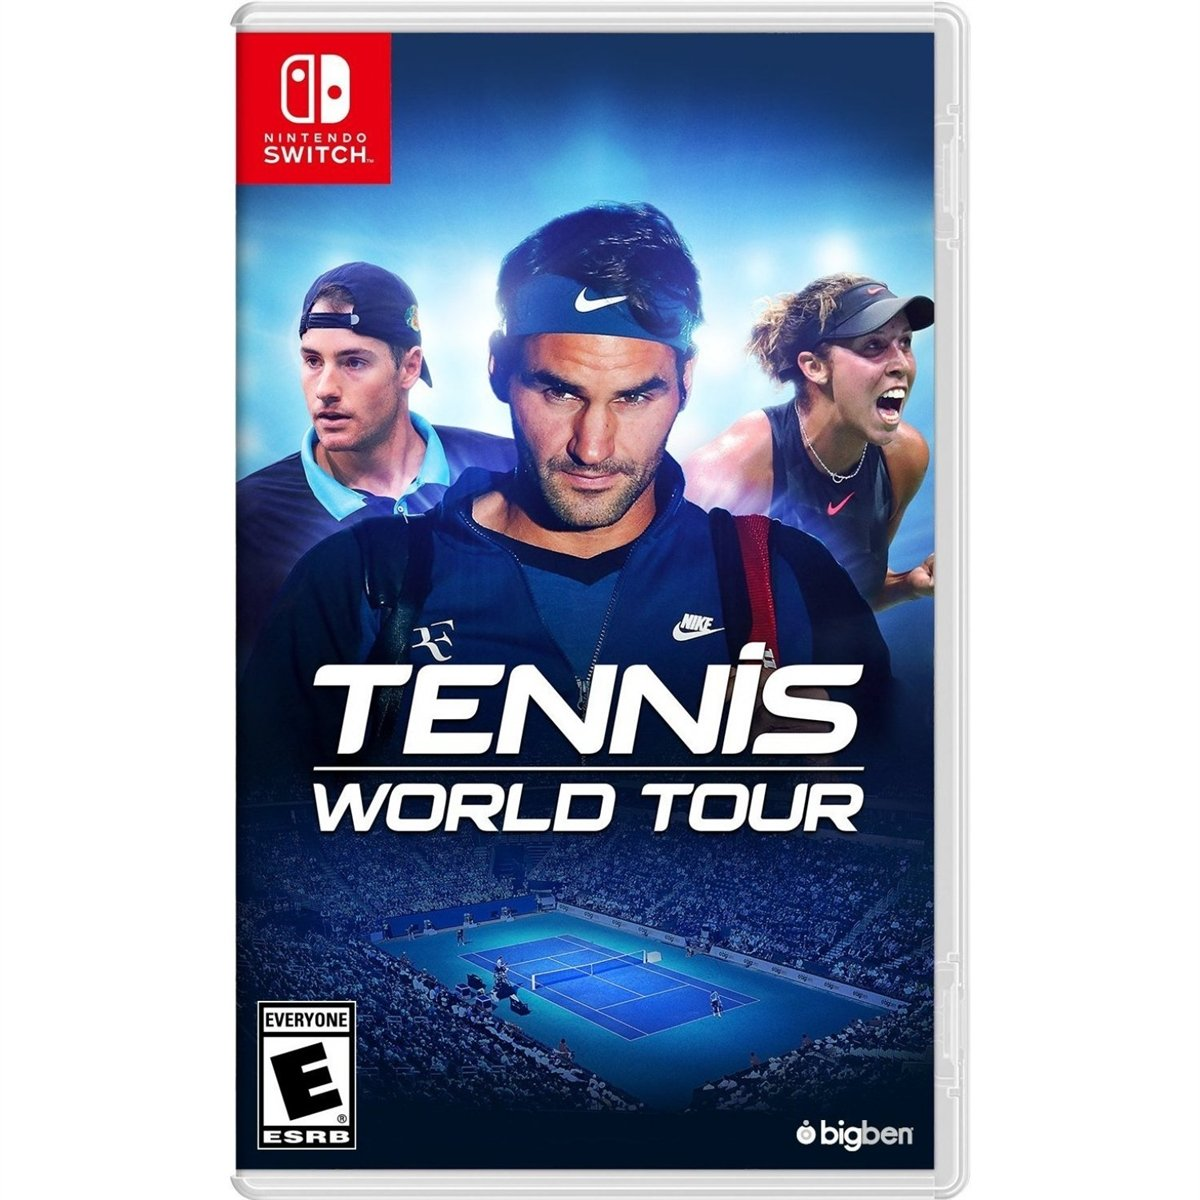 tennis-world-tour-nintendo-switch